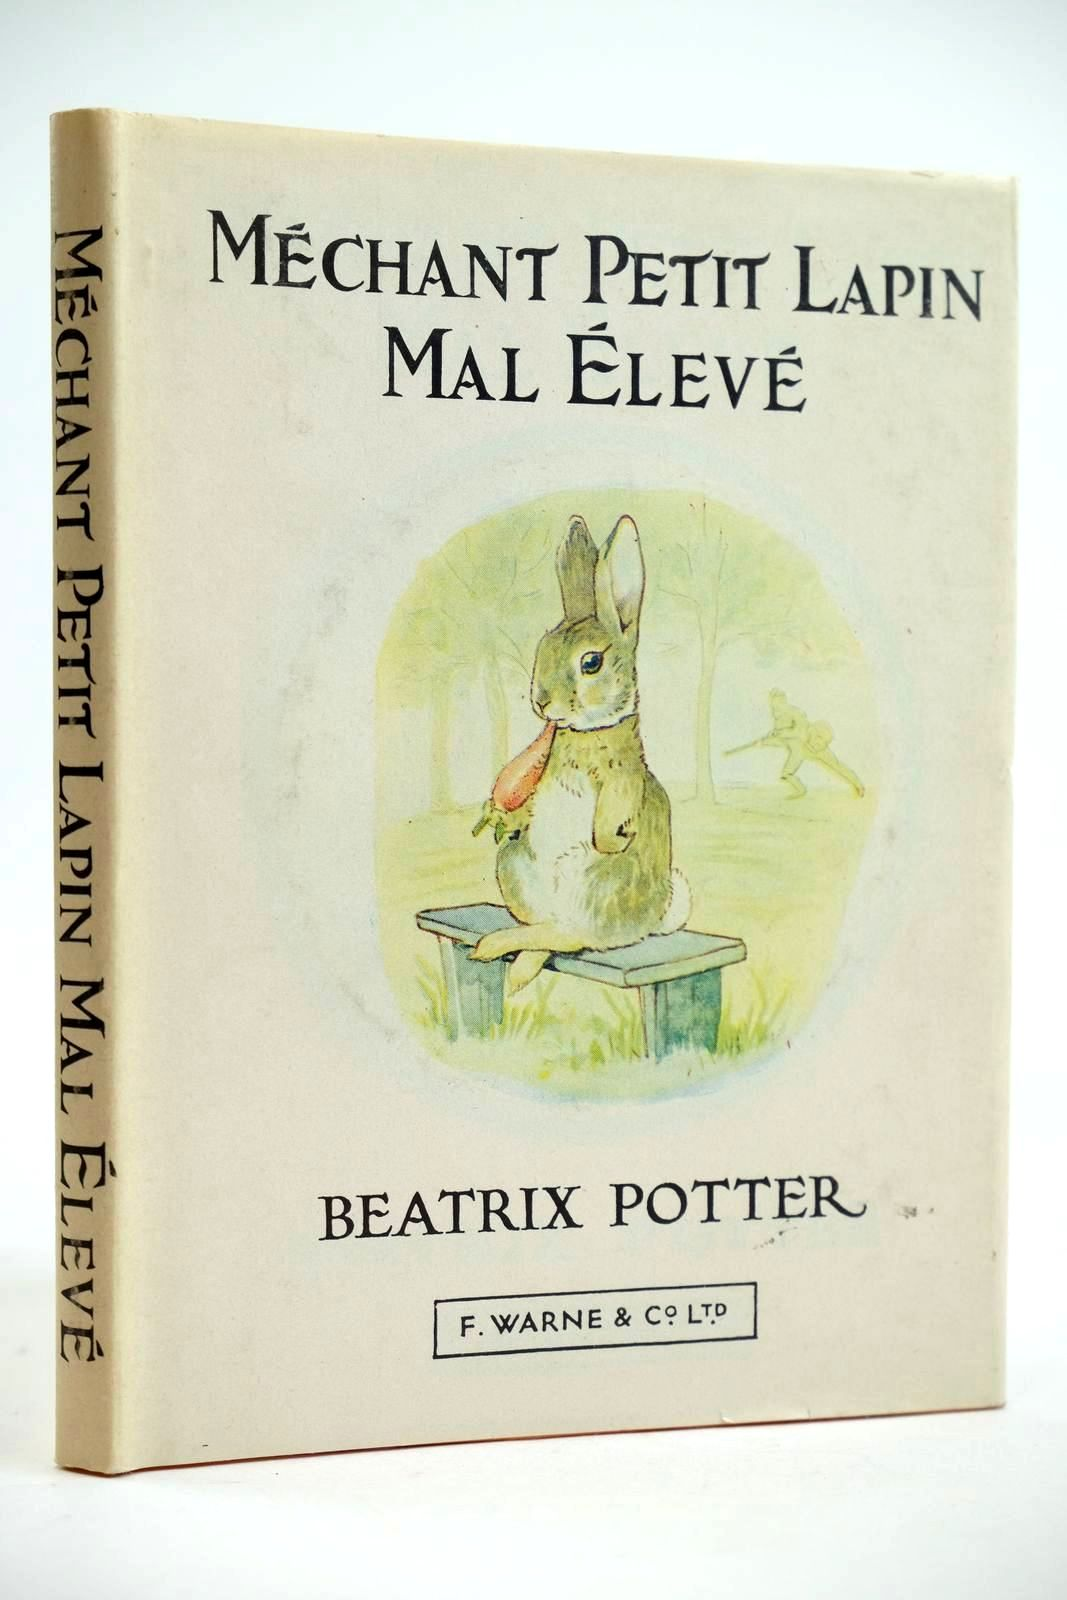 Photo of L'HISTOIRE D'UN MECHANT PETIT LAPIN MAL ELEVE written by Potter, Beatrix illustrated by Potter, Beatrix published by Frederick Warne & Co Ltd. (STOCK CODE: 2132070)  for sale by Stella & Rose's Books